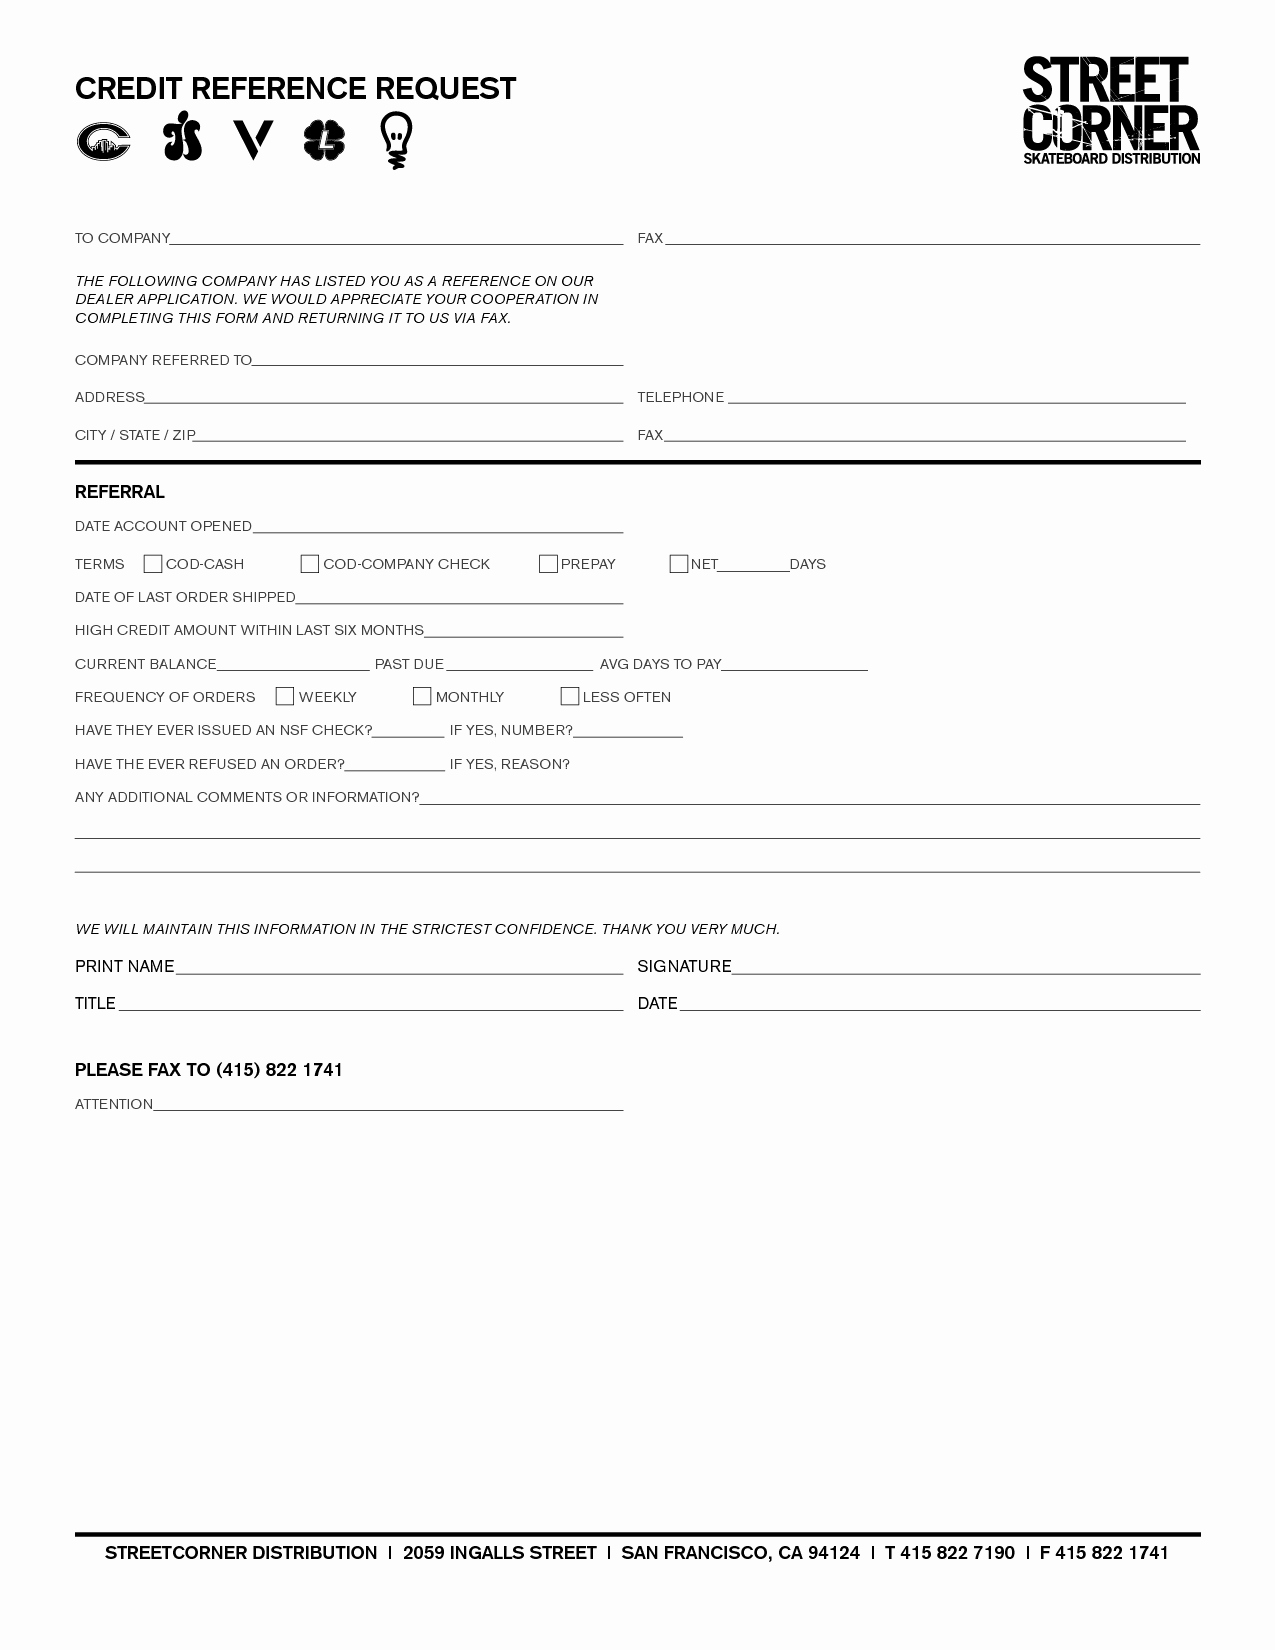 Credit Reference Sheet Template Unique Credit Reference form Free Printable Documents